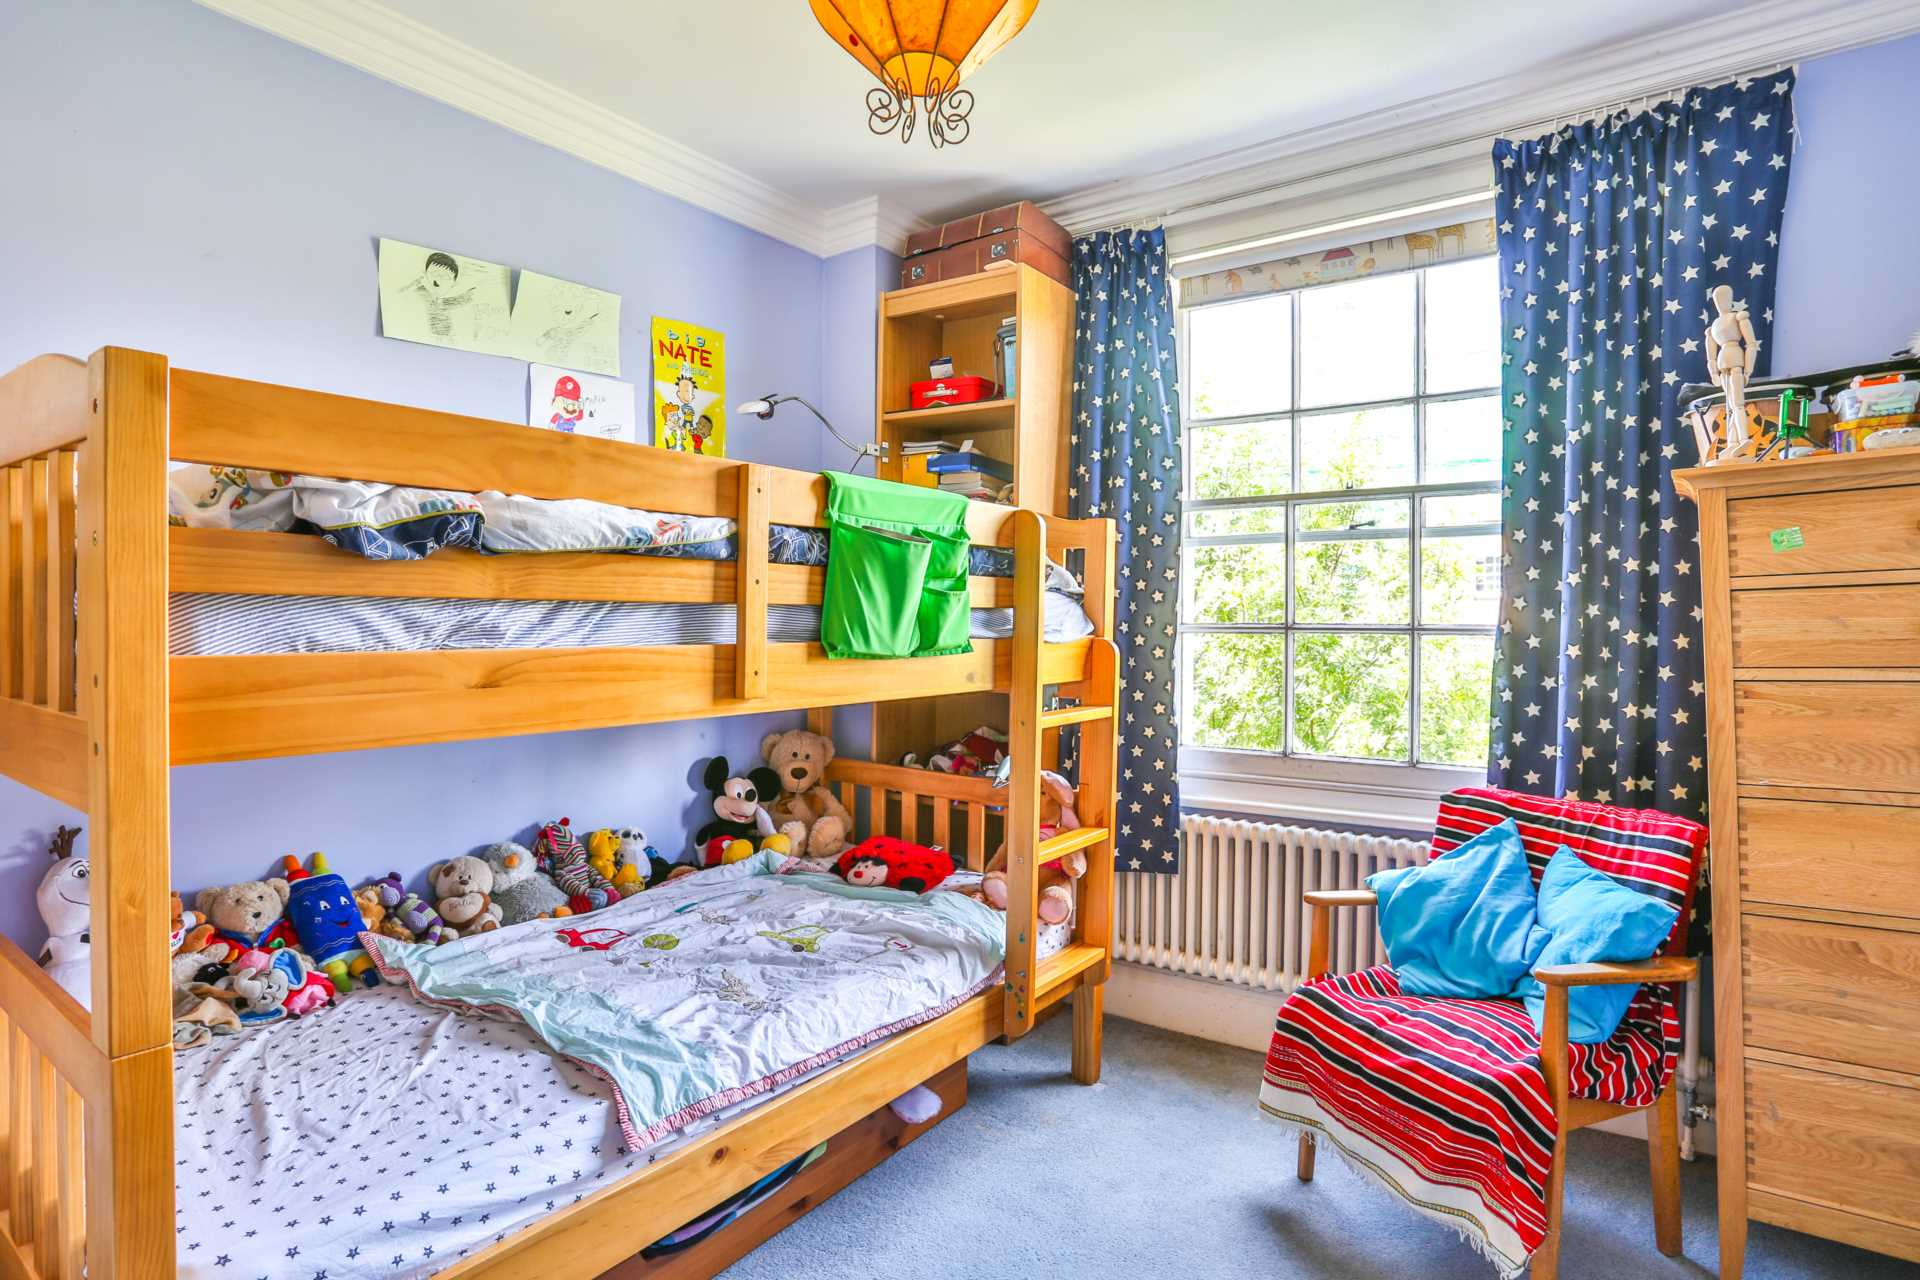 3 bedroom house for sale matilda street london n1 0la